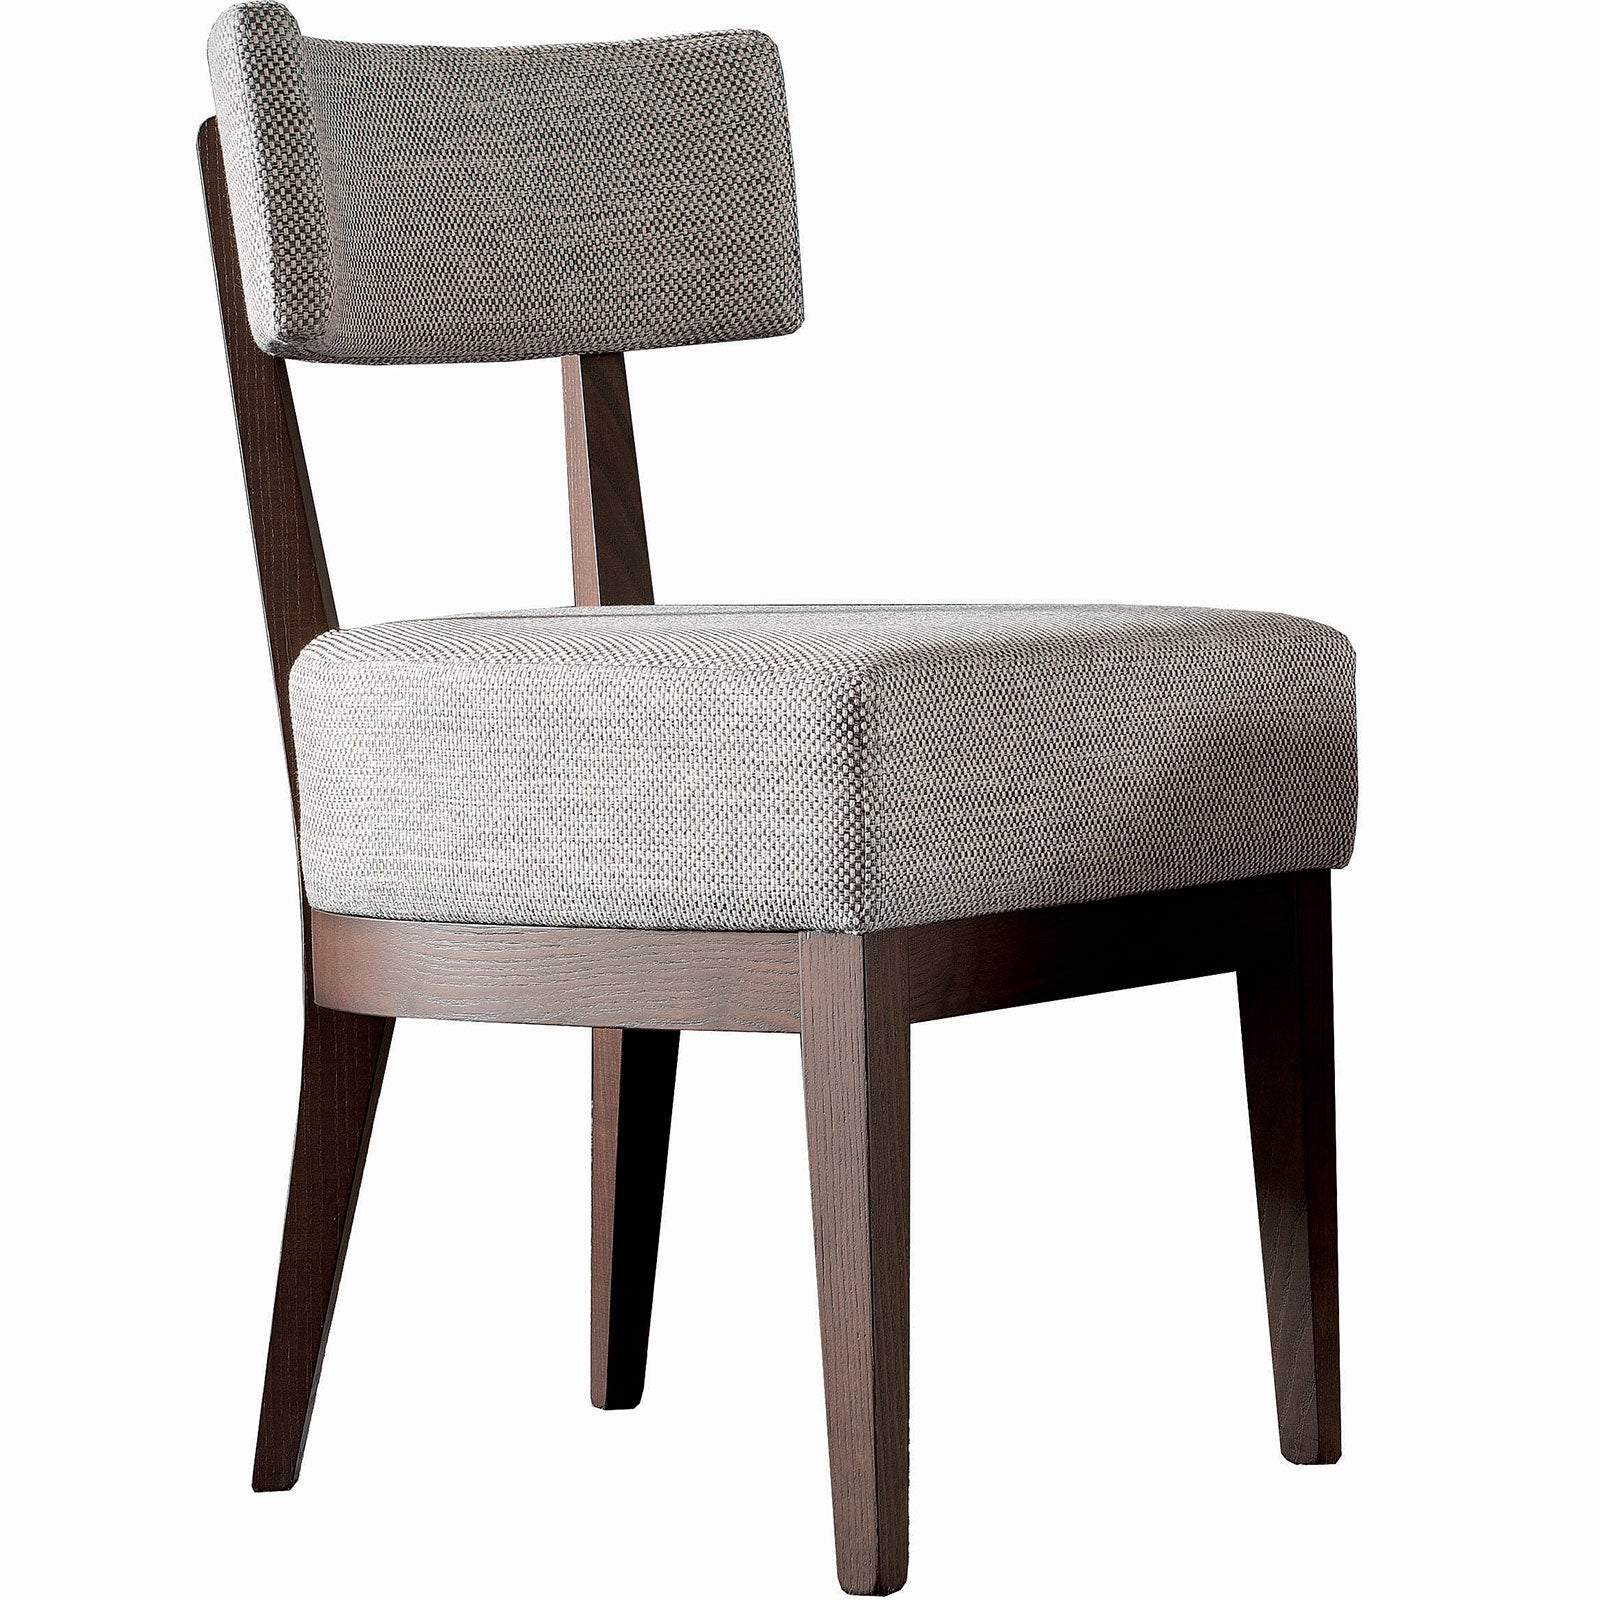 Accademia Set Of 2 Chairs In Calipso